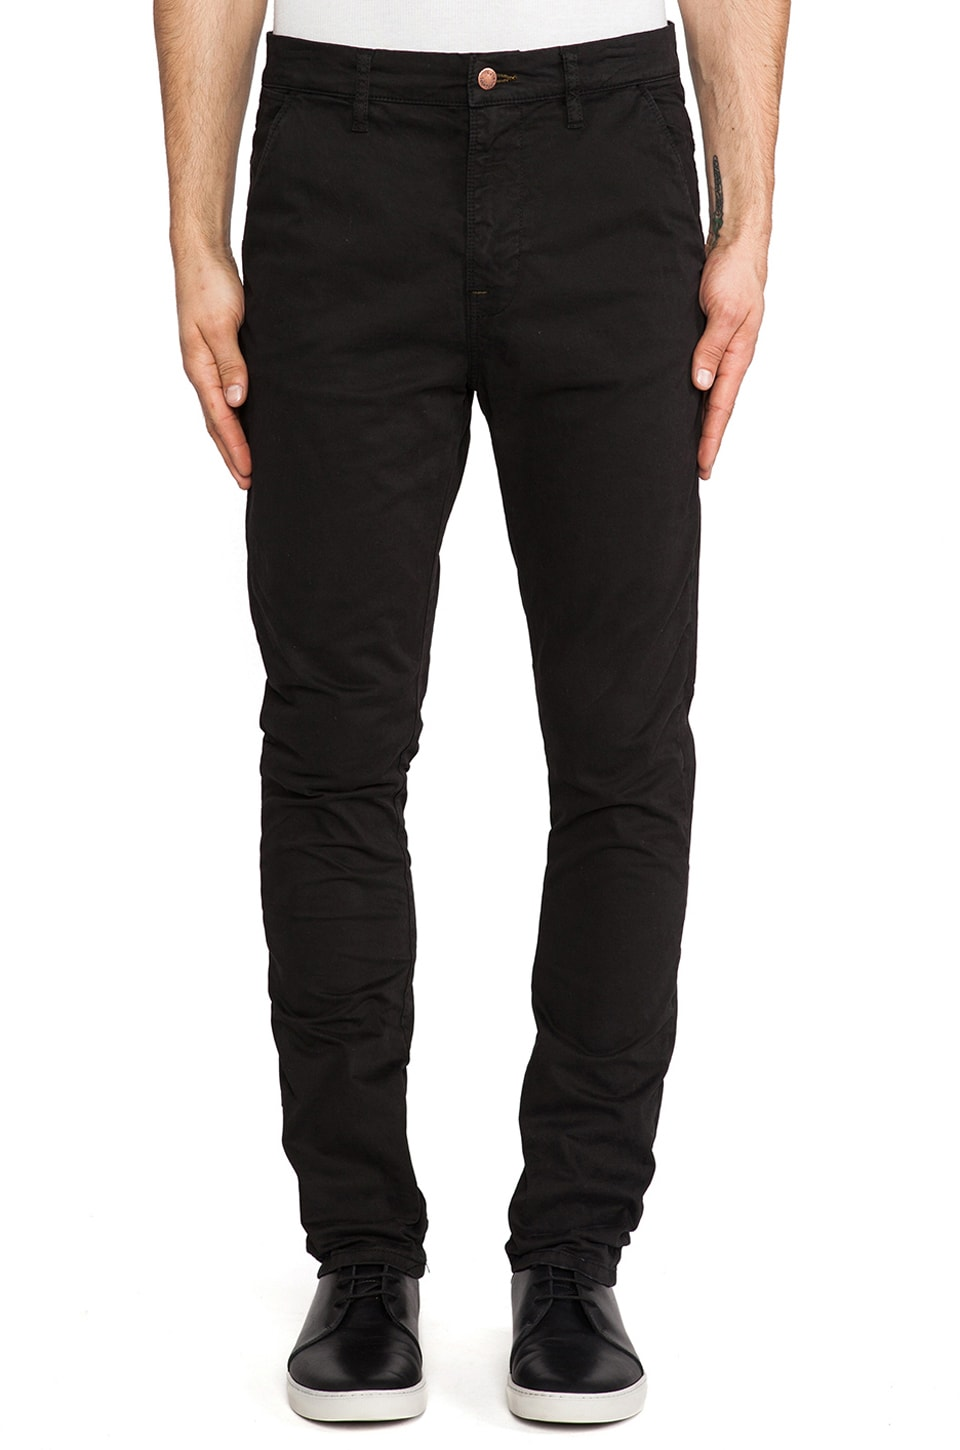 Nudie Jeans Khaki Slim in Org. Black Worn